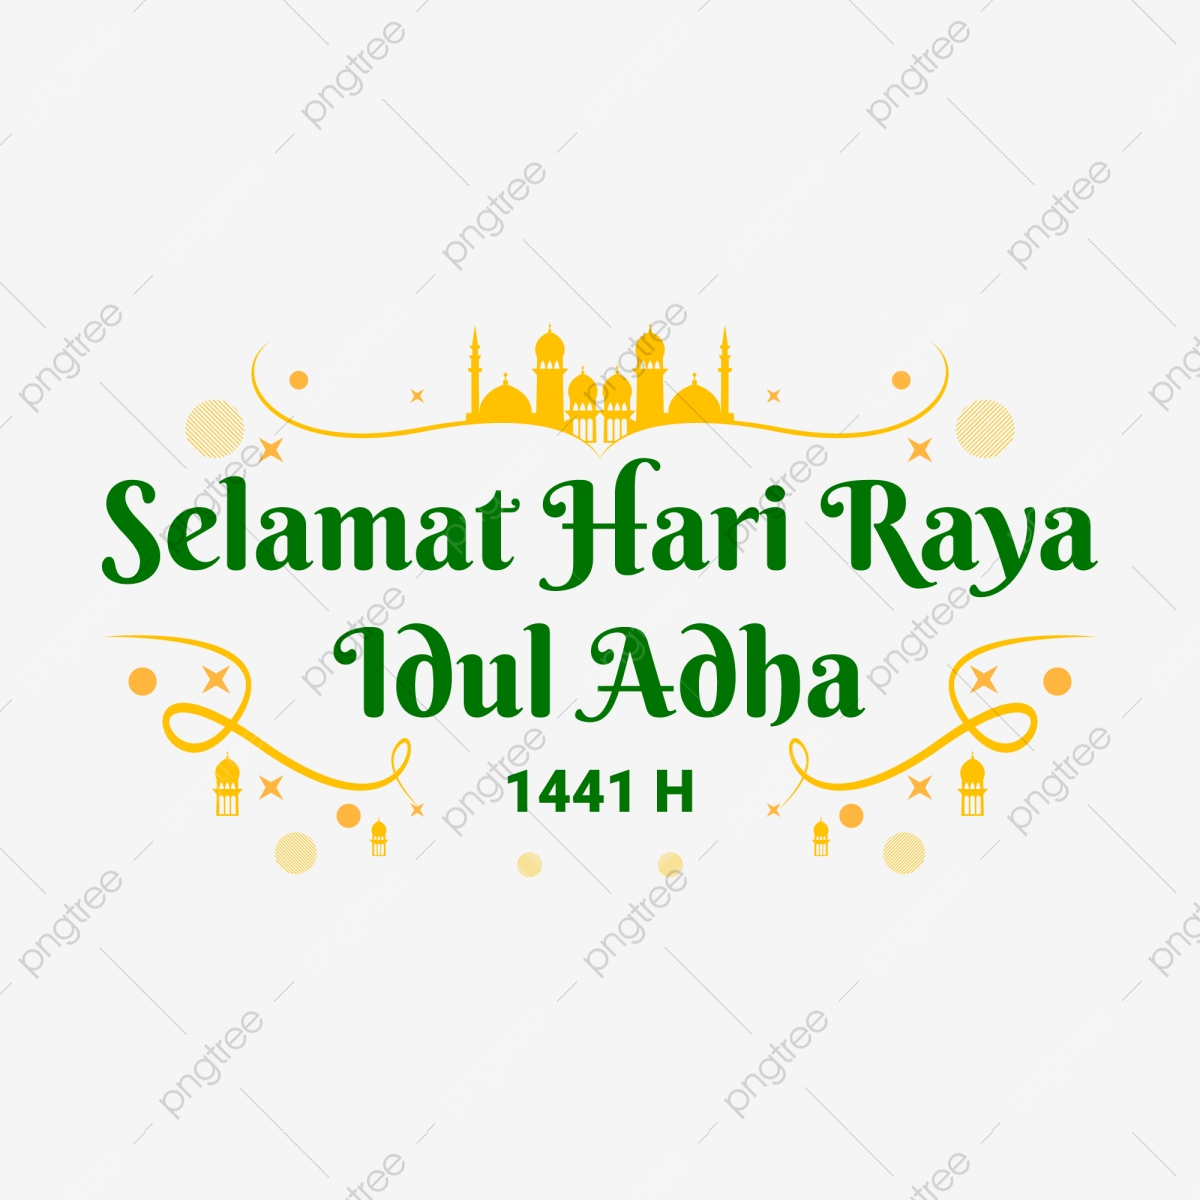 Selamat Hari Raya Idul Adha 1441 H Greeting Text Yellow Green Idul Adha Eid Al Adha Eid Adha Png And Vector With Transparent Background For Free Download